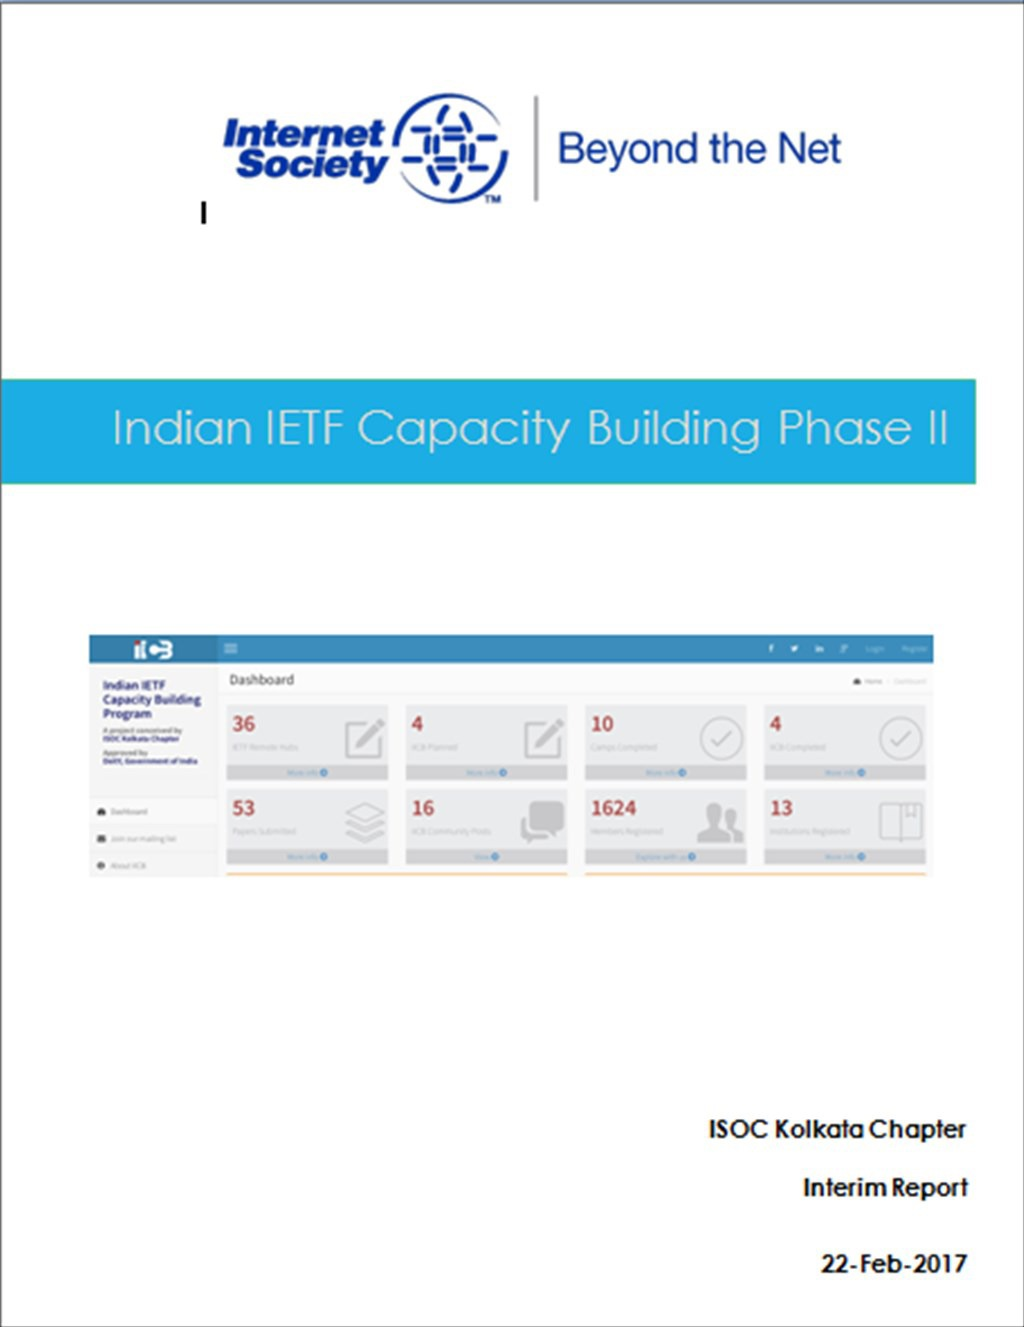 Indian IETF Capacity Building Phase II - Interim Report